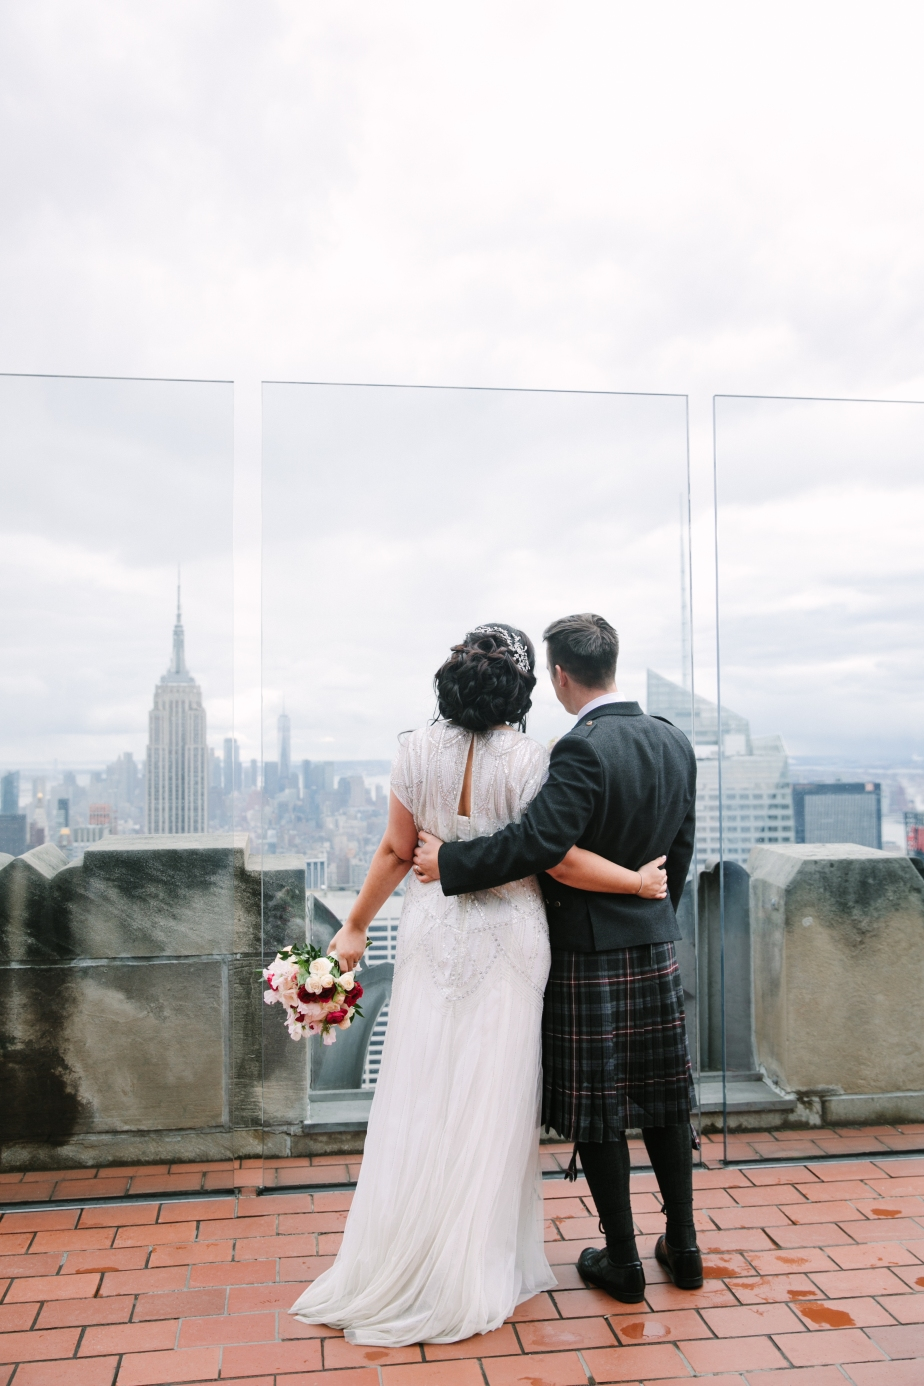 Conservatory Gardens wedding